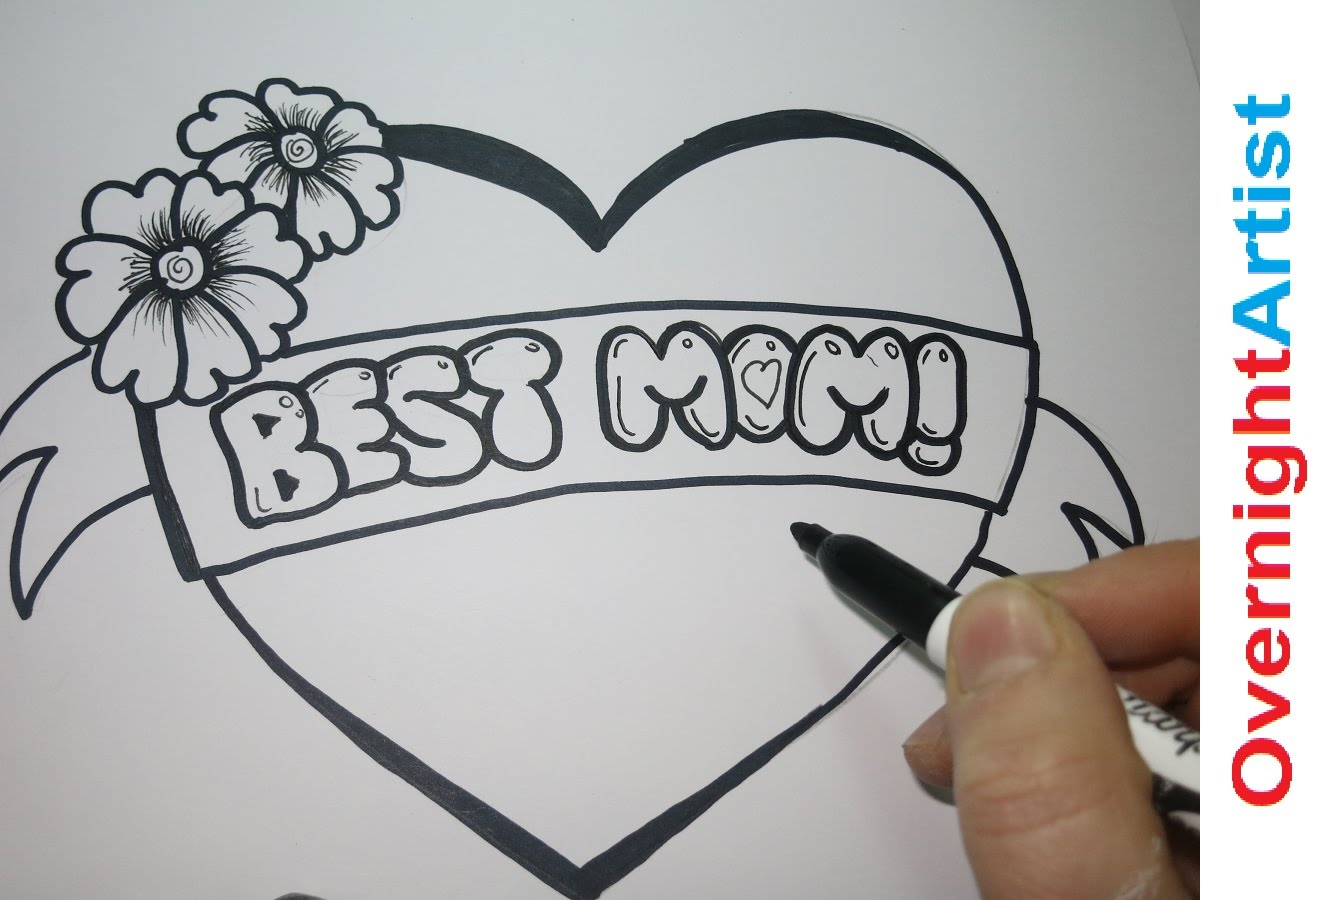 006 Things To Draw For Your Mom On Her Birthday 169857 How Write Page Research Paper In One Phenomenal A 10 Night Full